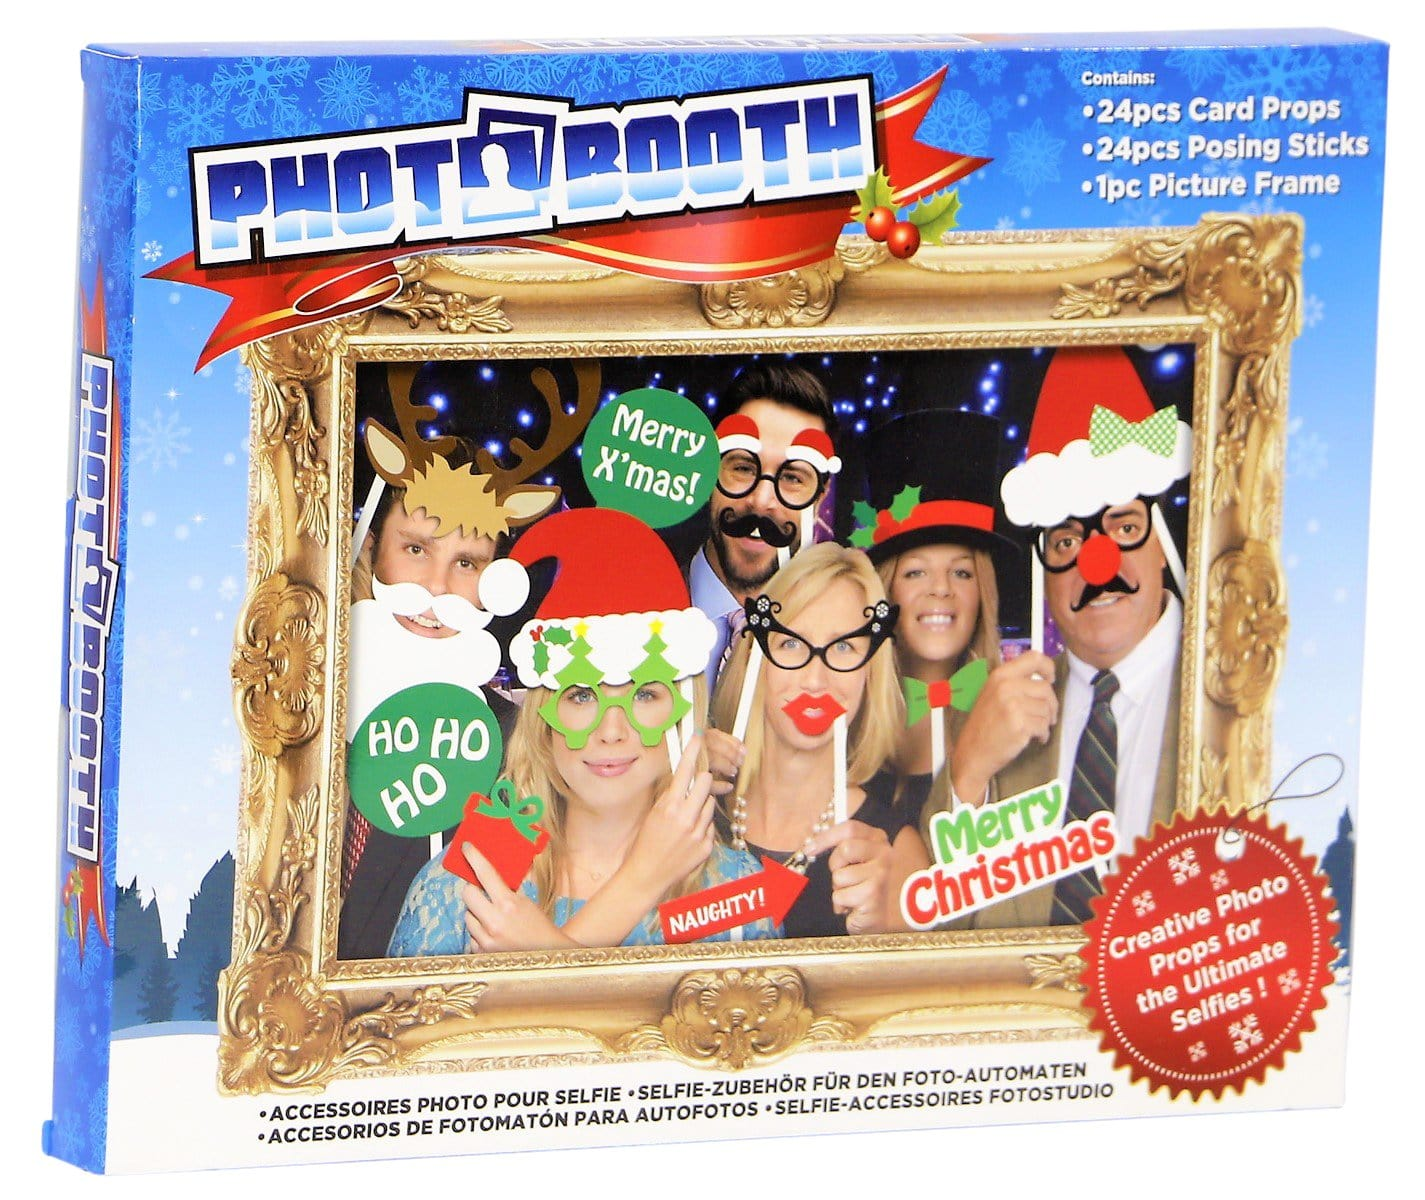 Christmas Photo Booth Frame with Props